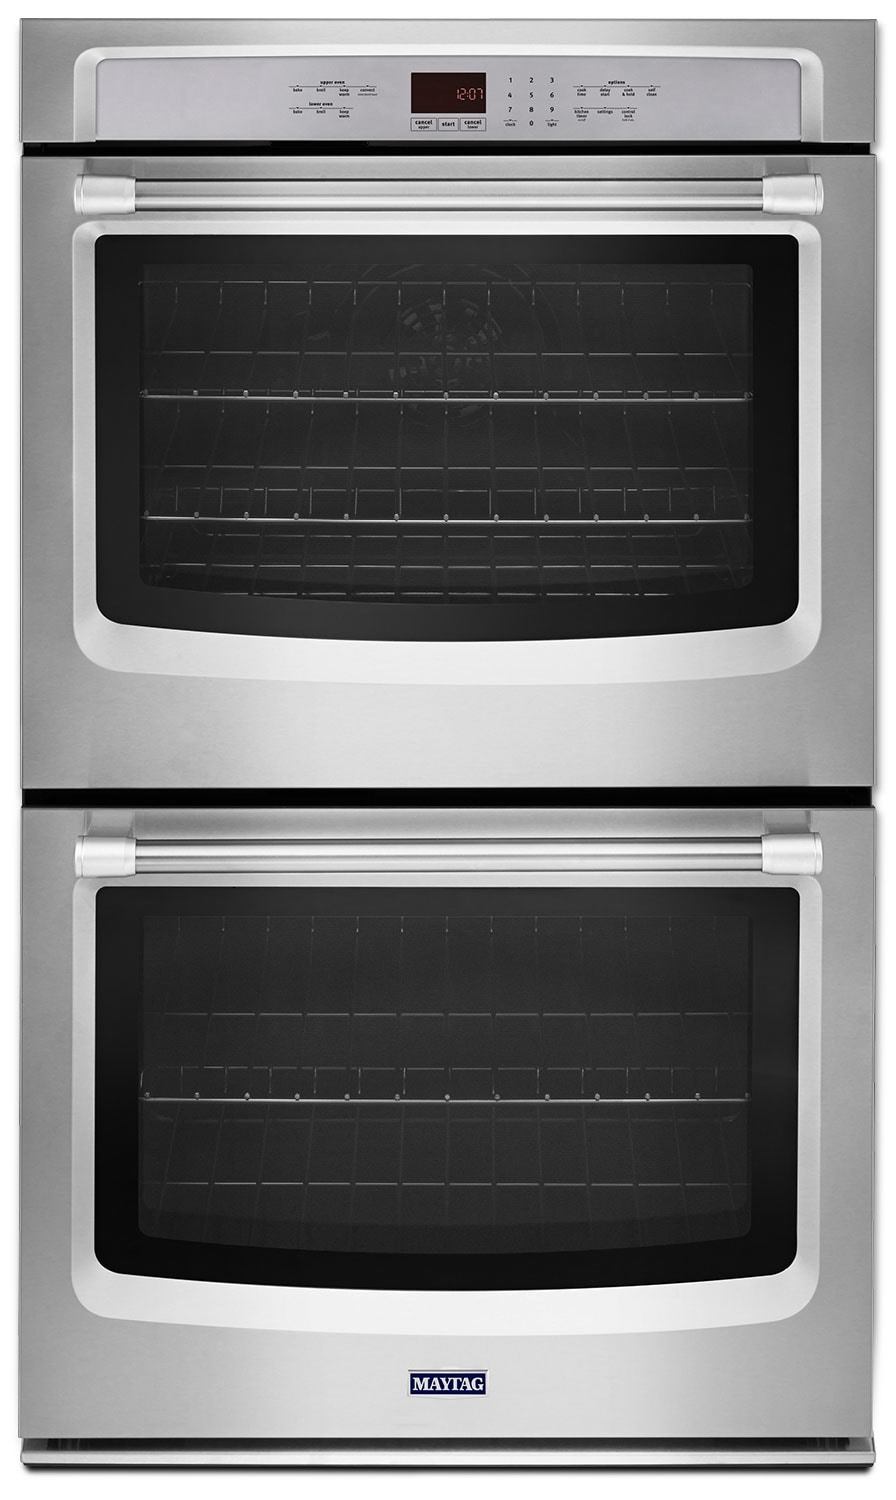 Cooking Products - Maytag Stainless Steel Double Convection Wall Oven (10 Cu. Ft.) - MEW9630DS